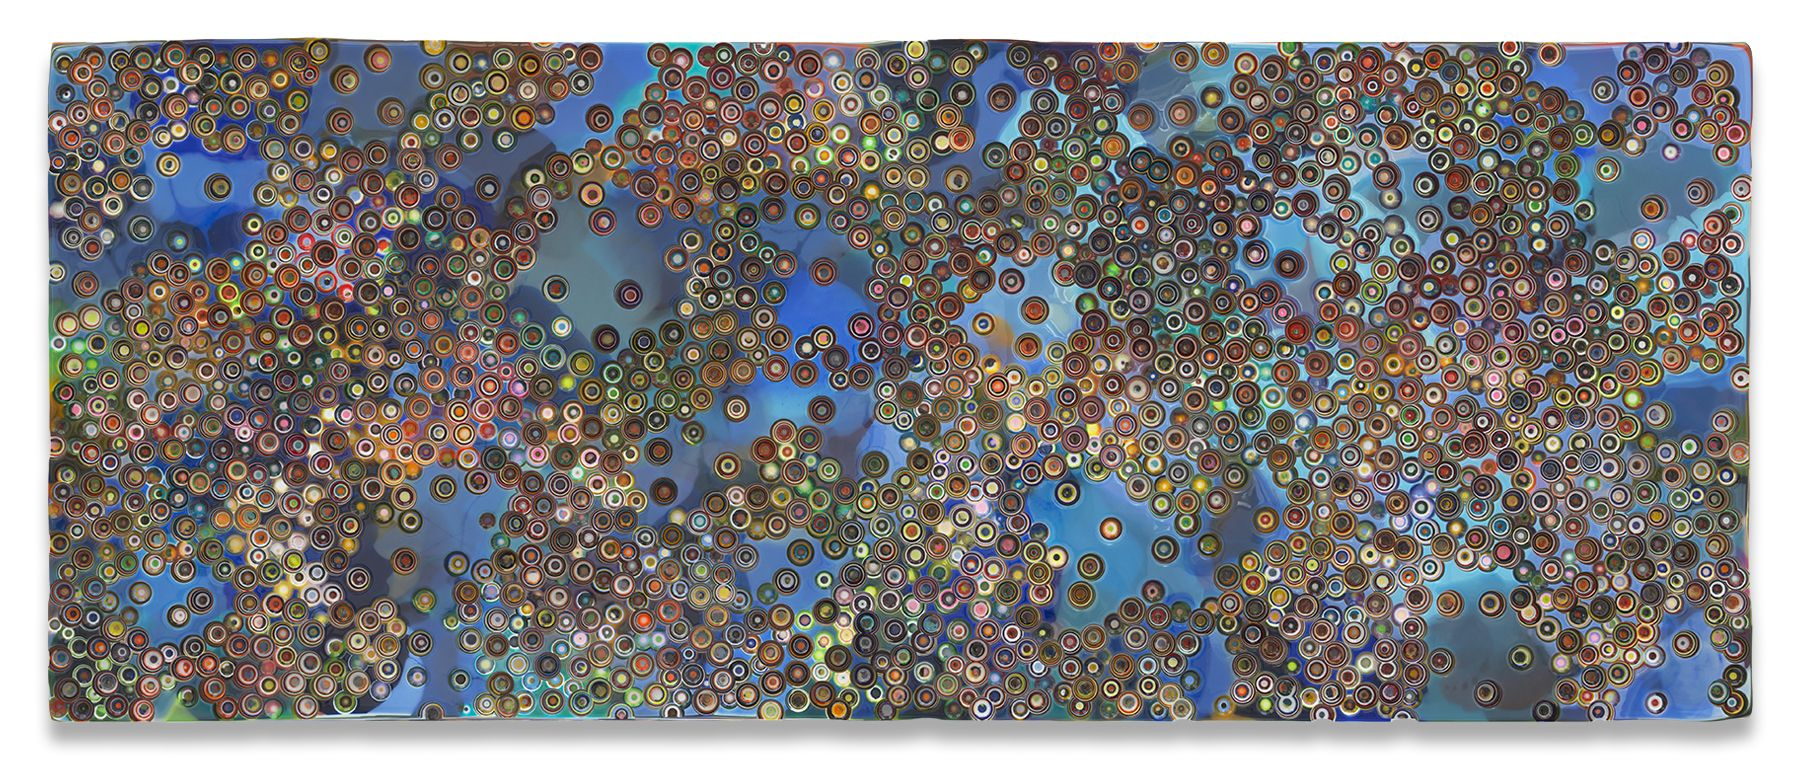 Markus Linnenbrink, TISFORTRUTHANDIISFORINTERNAL, 2019, Epoxy resin and pigments on wood, 48 x 120 inches, 121.9 x 304.8 cm, MMG#30895